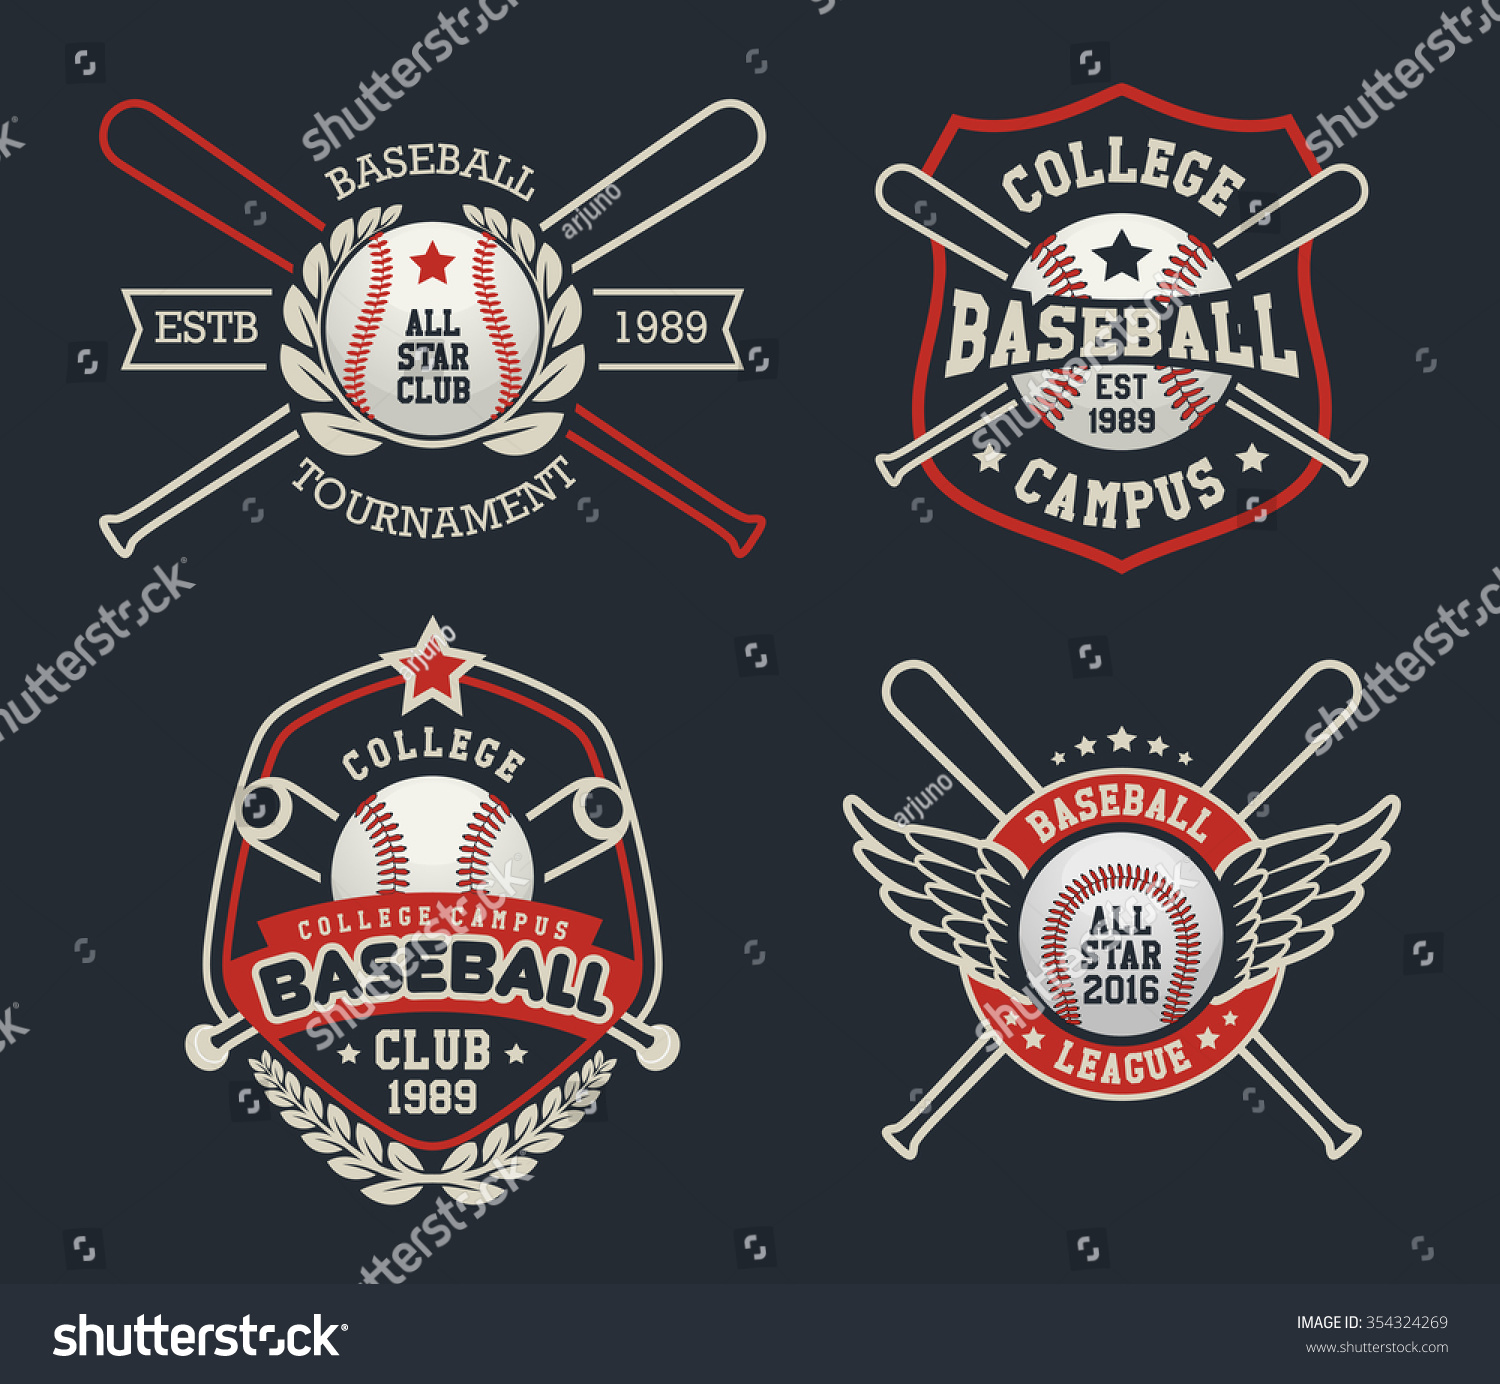 Baseball T Shirt Designs Ideas baseball t shirt designs google search Baseball Badge Logo Design Suitable For Logos Badge Banner Emblem Label